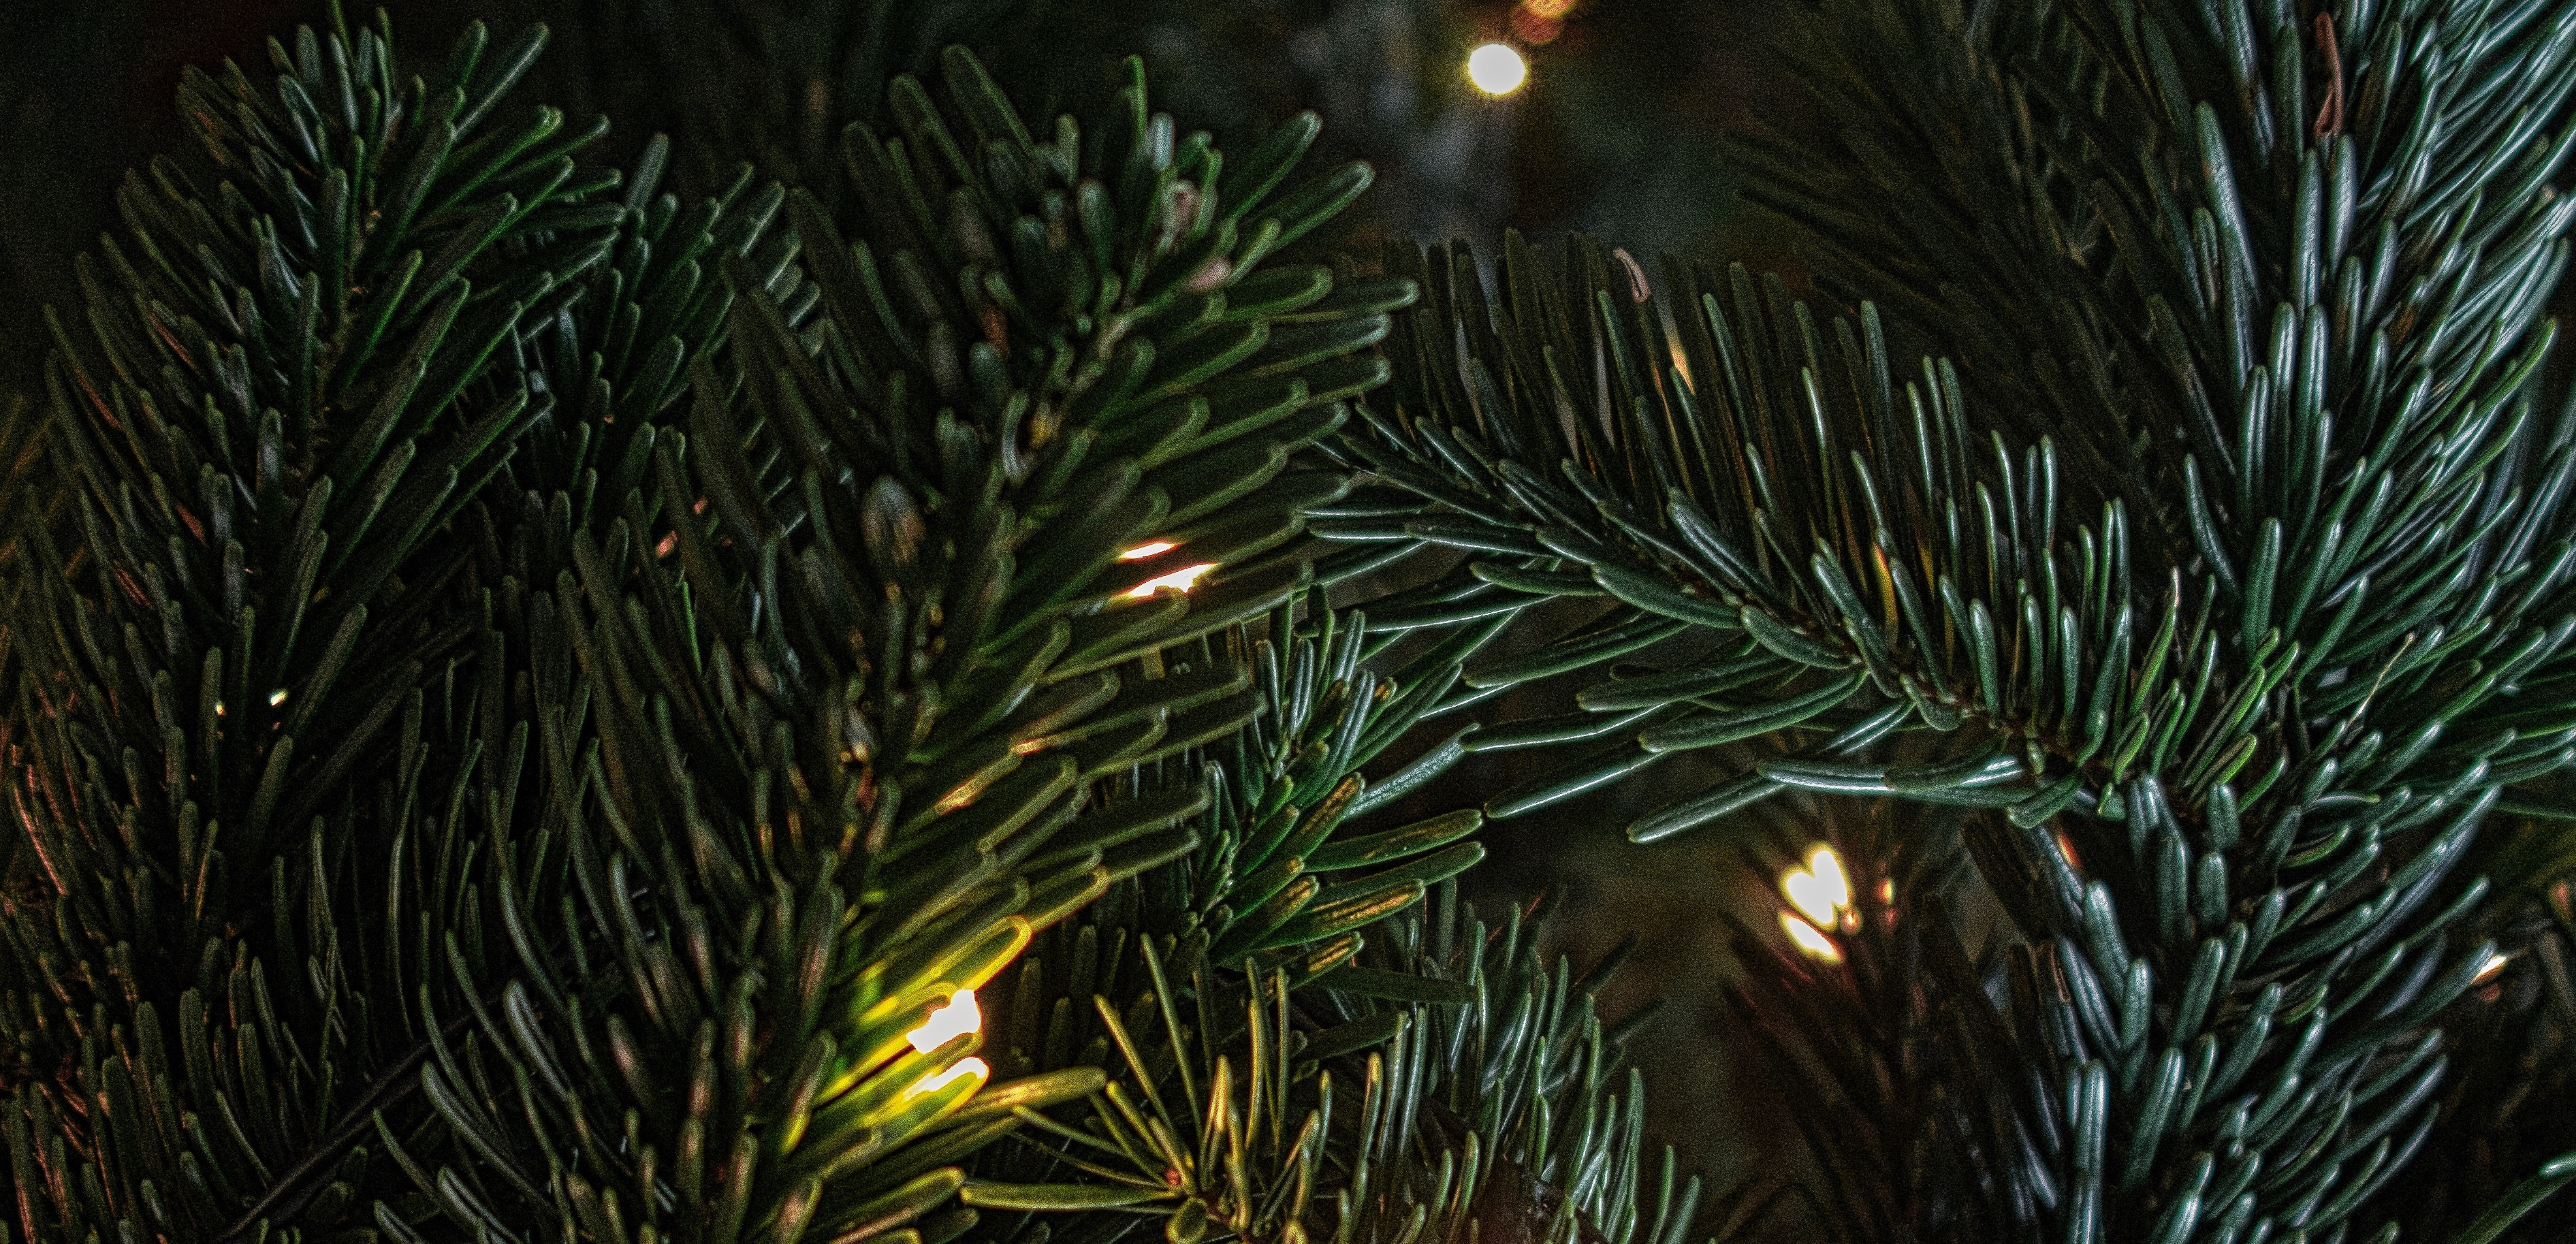 Recycle Christmas Tree Northwest Subrbs 2020 Dispose Of Your Christmas Trees, Wreaths Properly | Journal